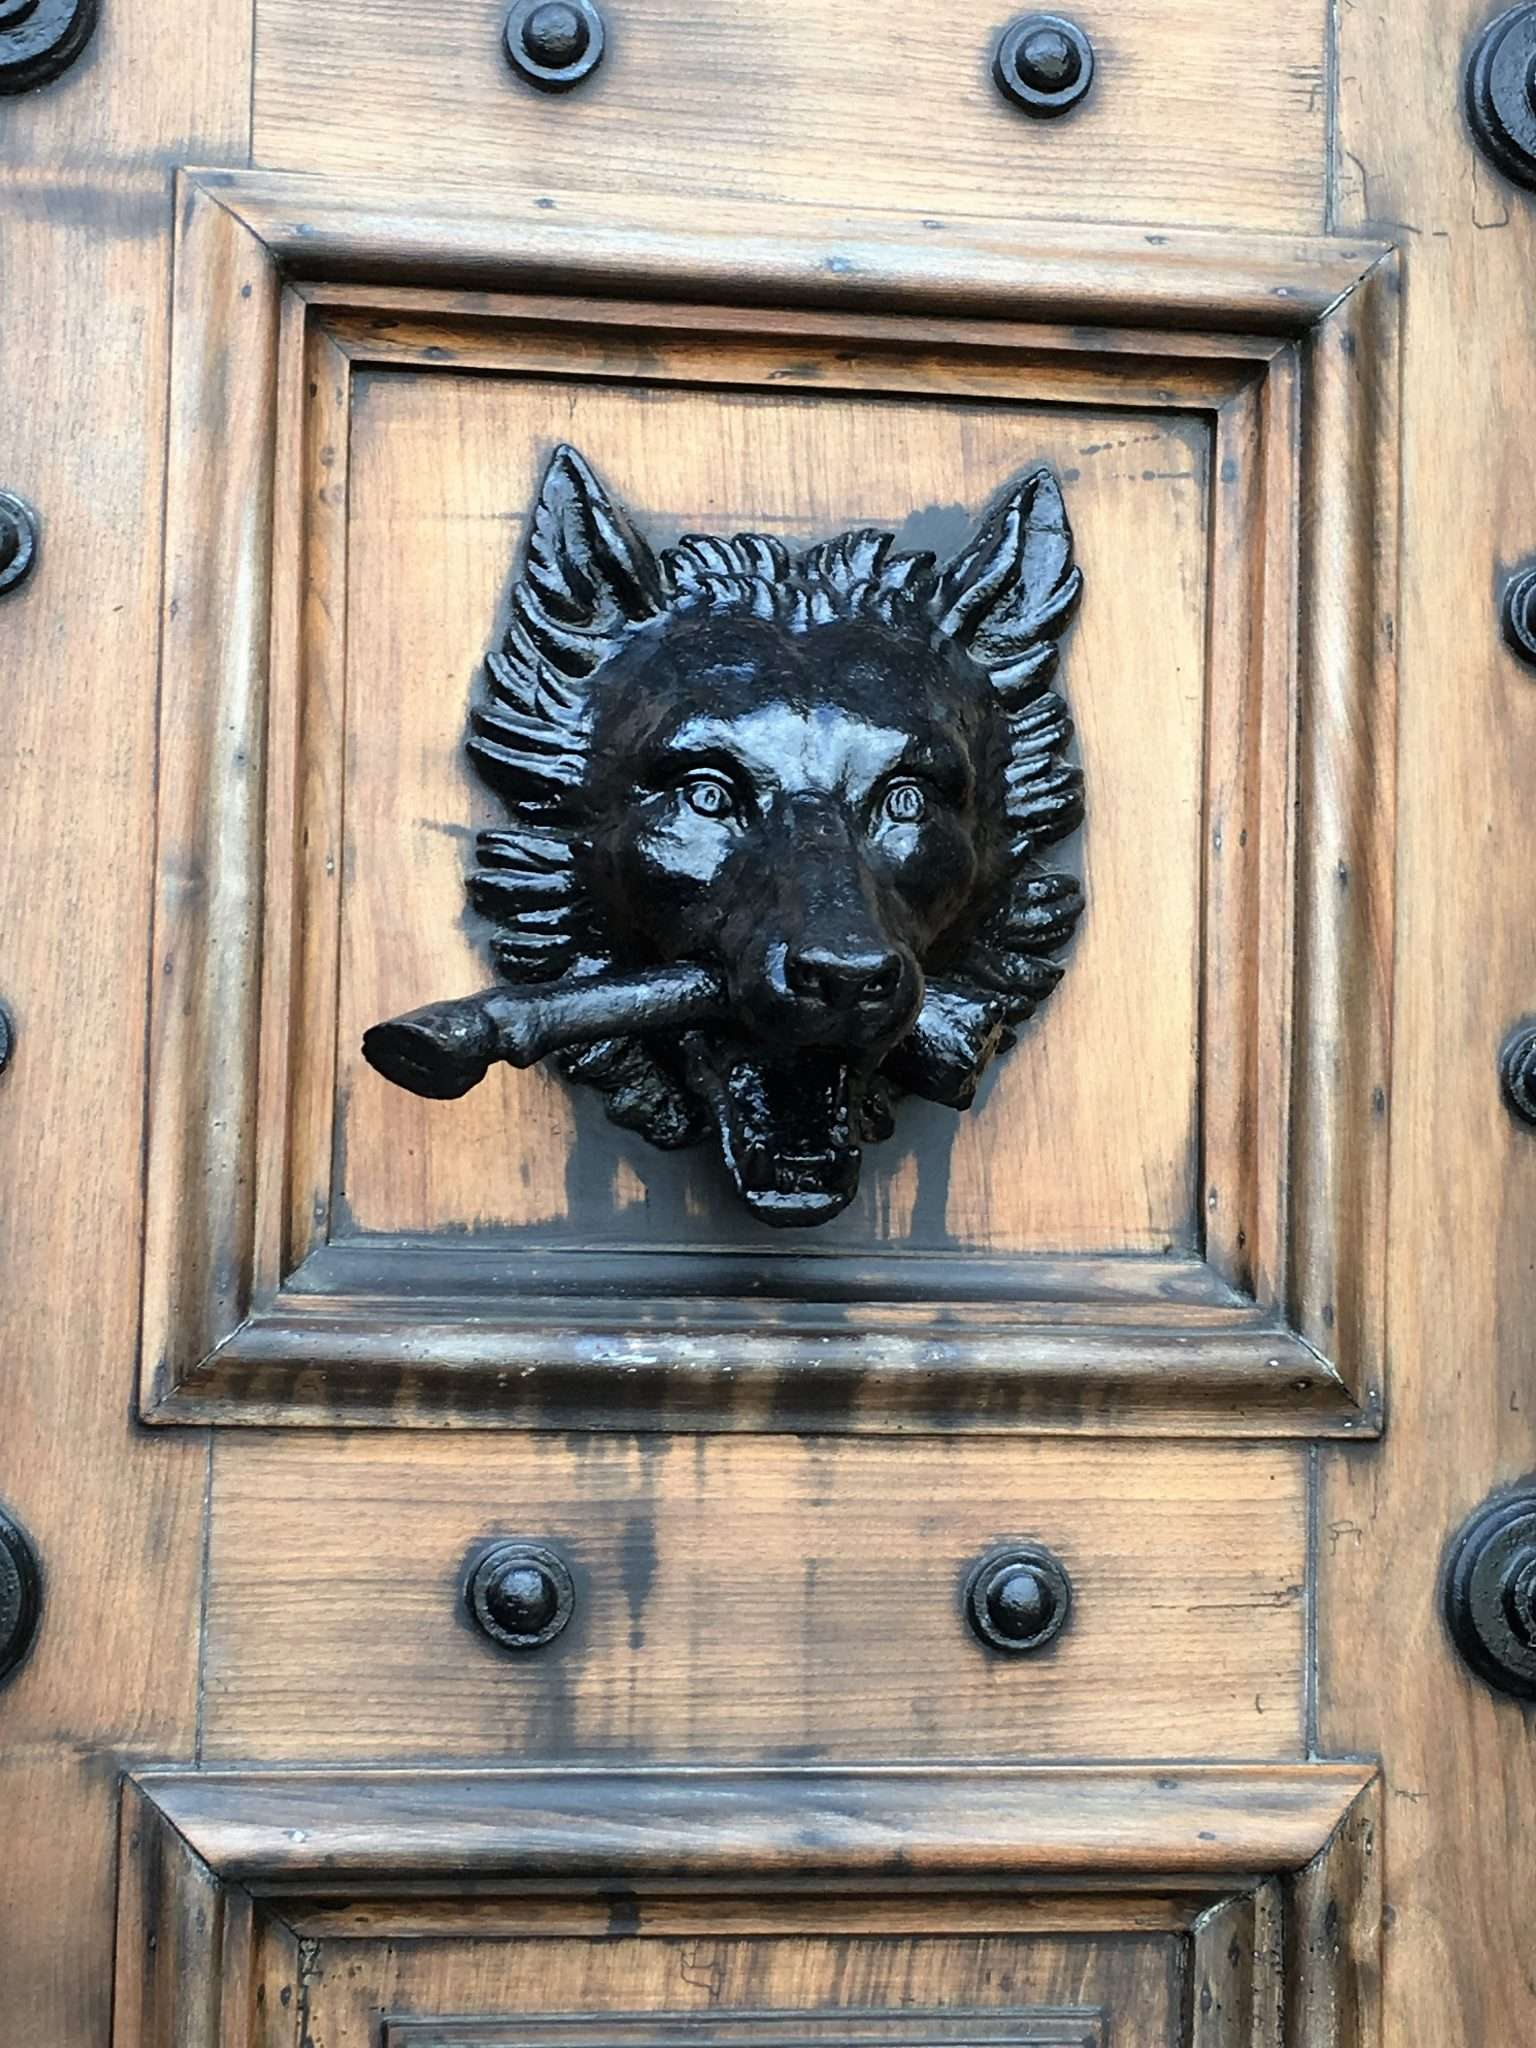 A large wooden entry door with a cast iron door knocker in the shape of a wolf with a stick in the mouth